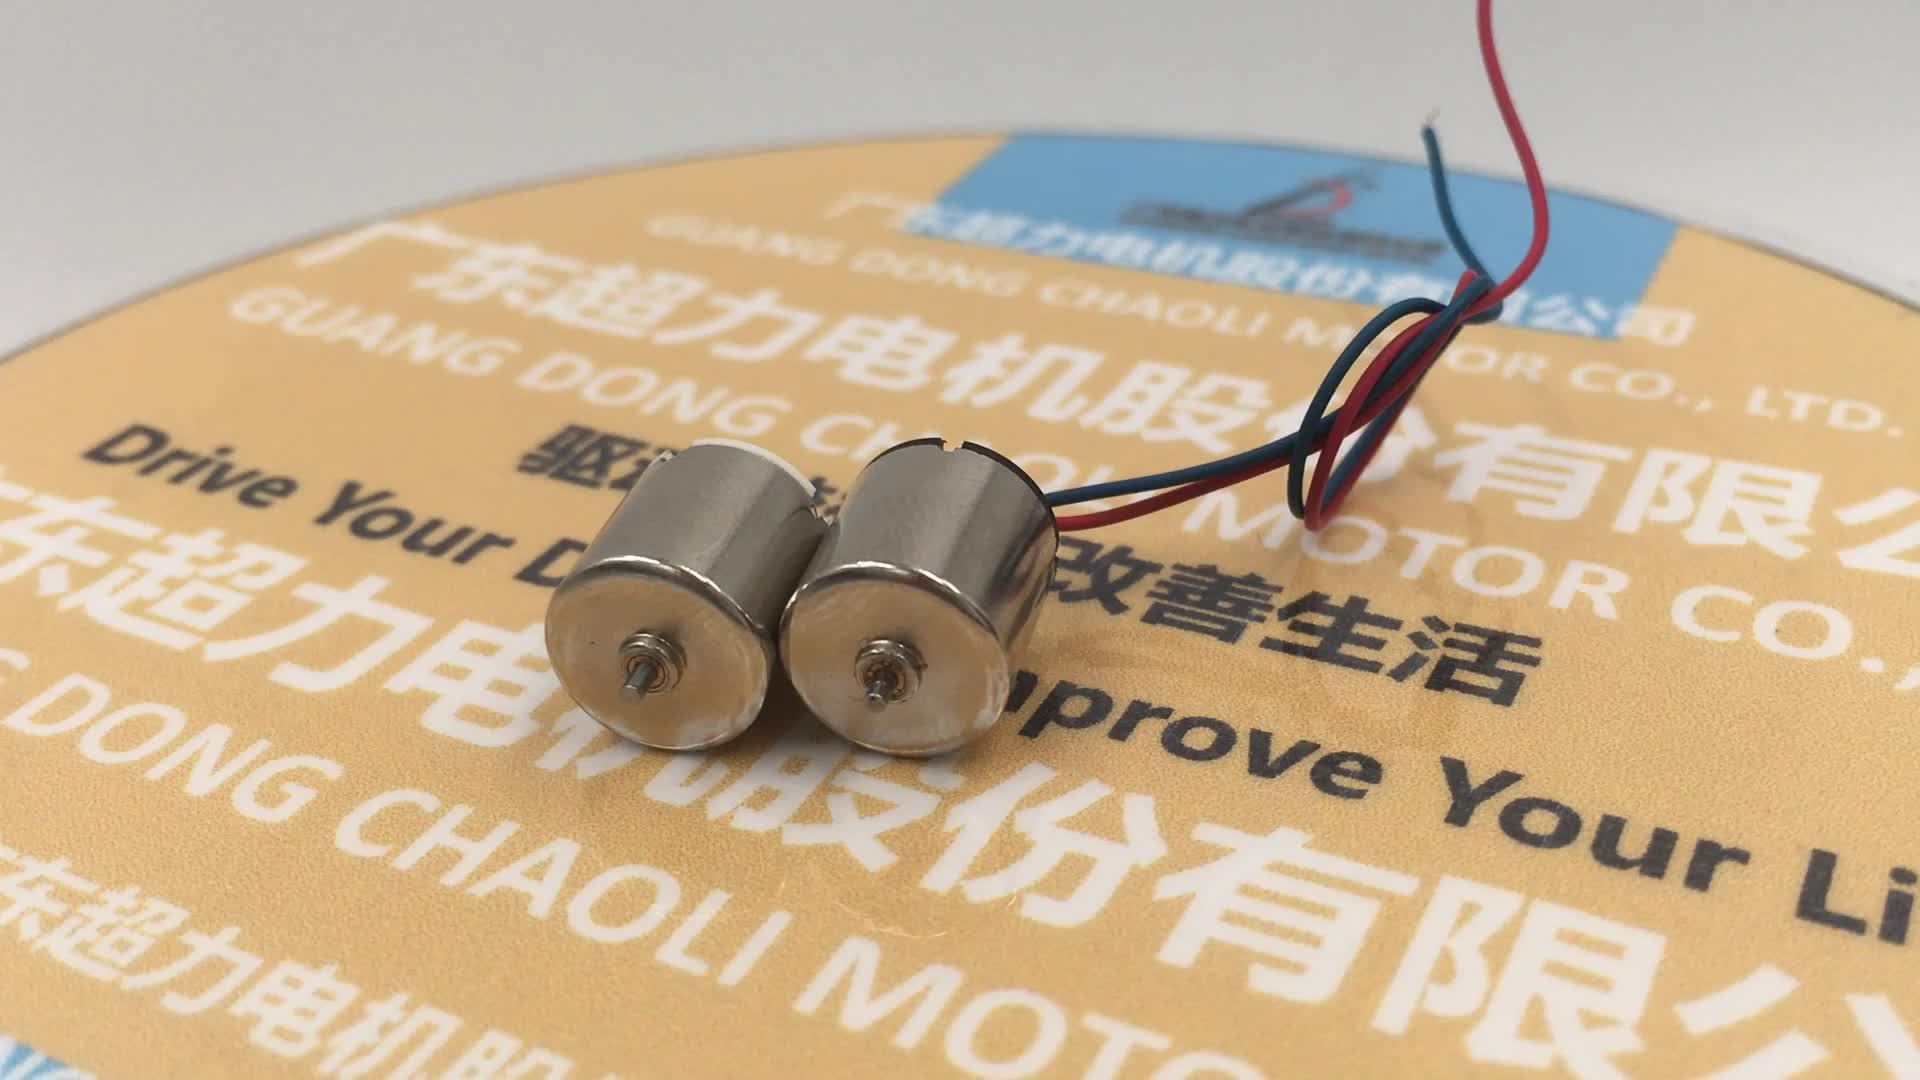 10mm Coreless motor CL-1010 small size for RC boat toys and robot